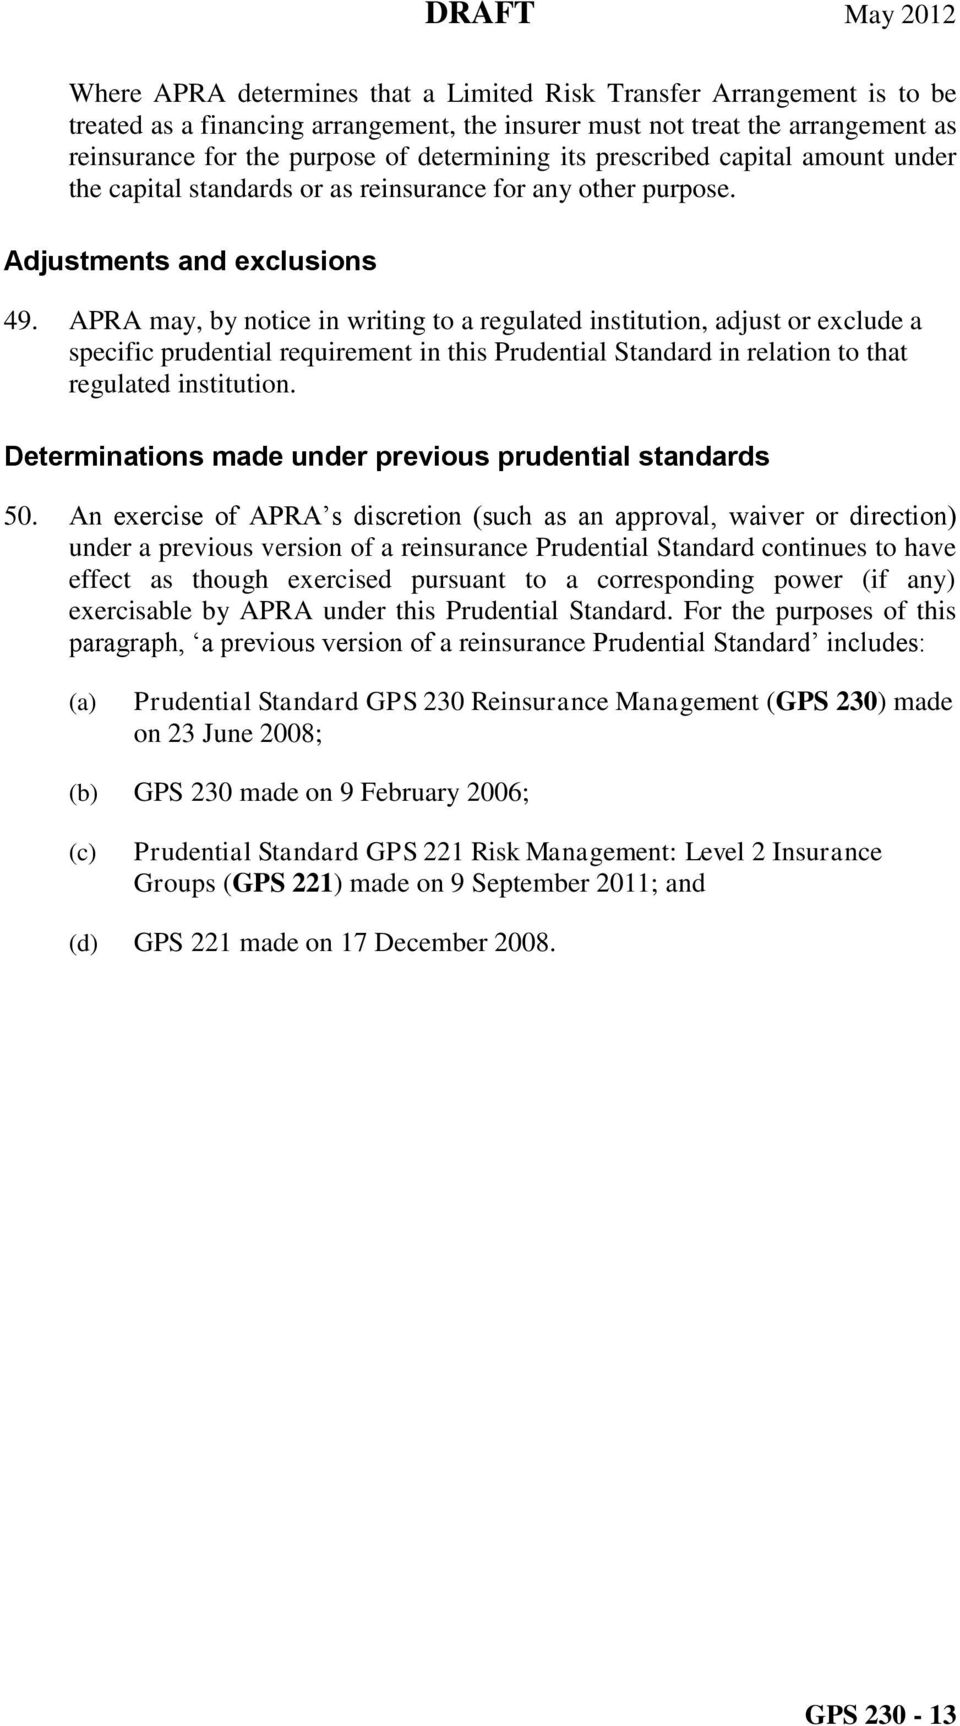 APRA may, by notice in writing to a regulated institution, adjust or exclude a specific prudential requirement in this Prudential Standard in relation to that regulated institution.